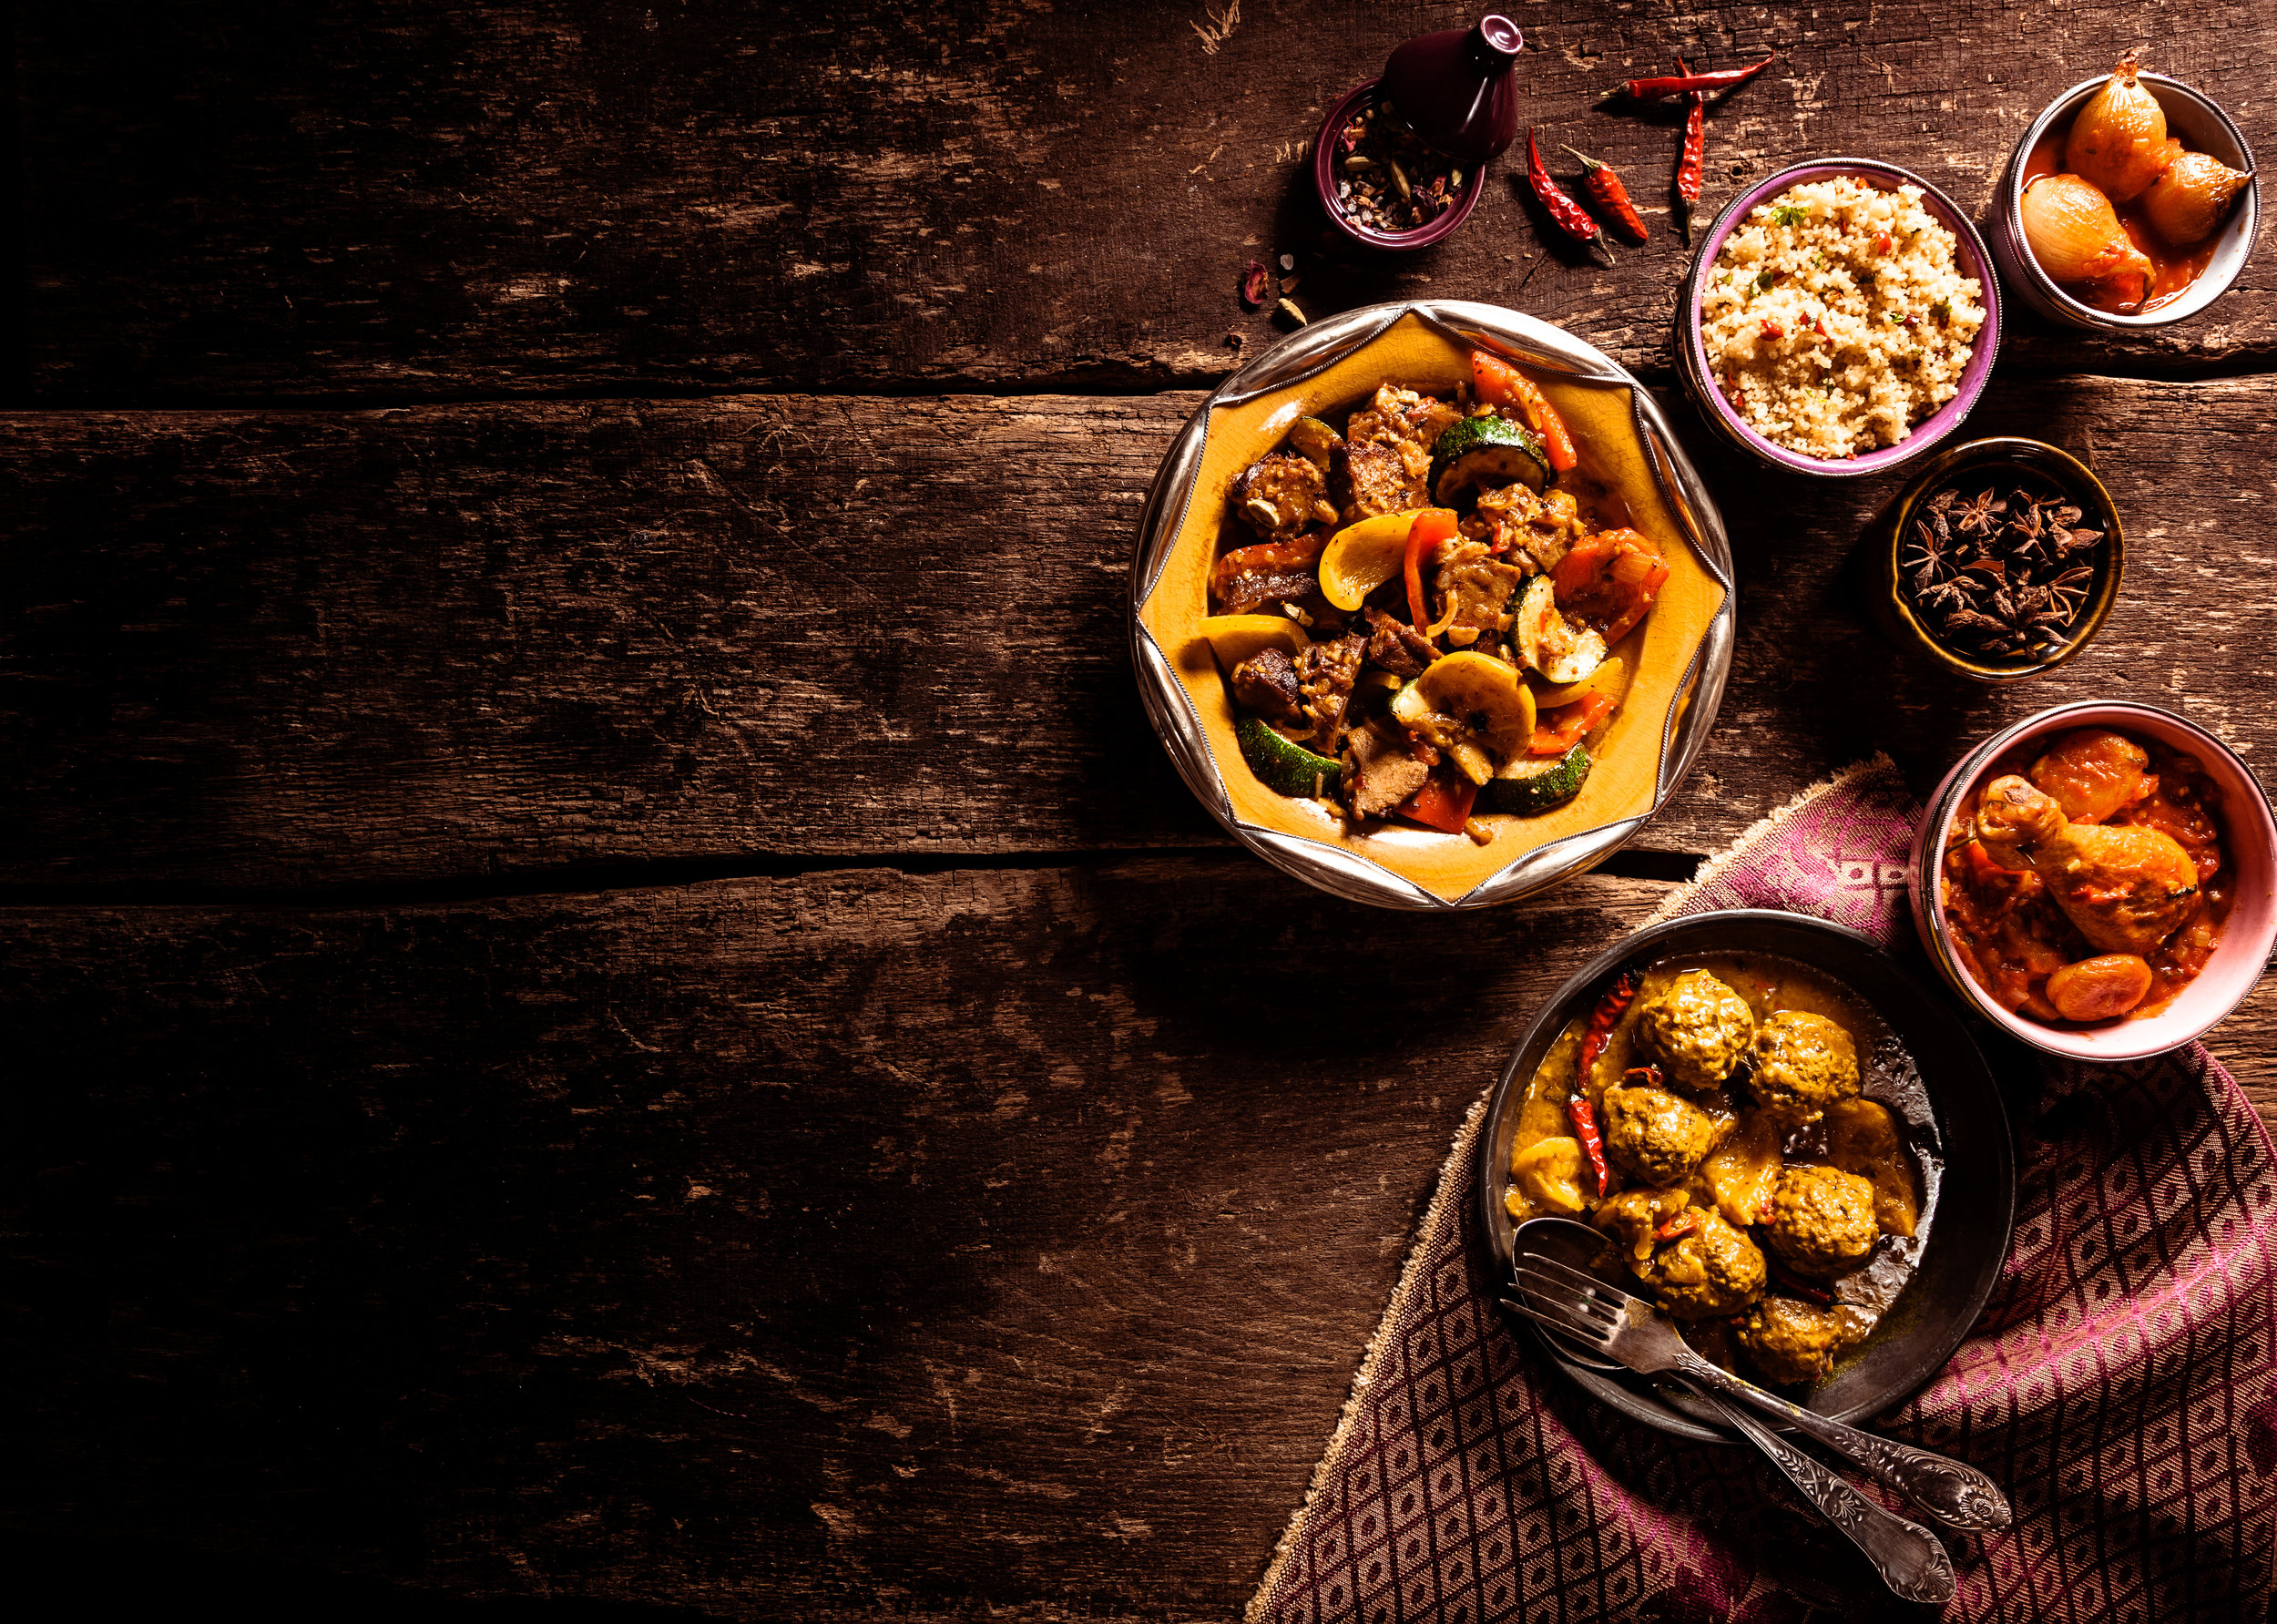 Global fusion flavors are popular in restaurants